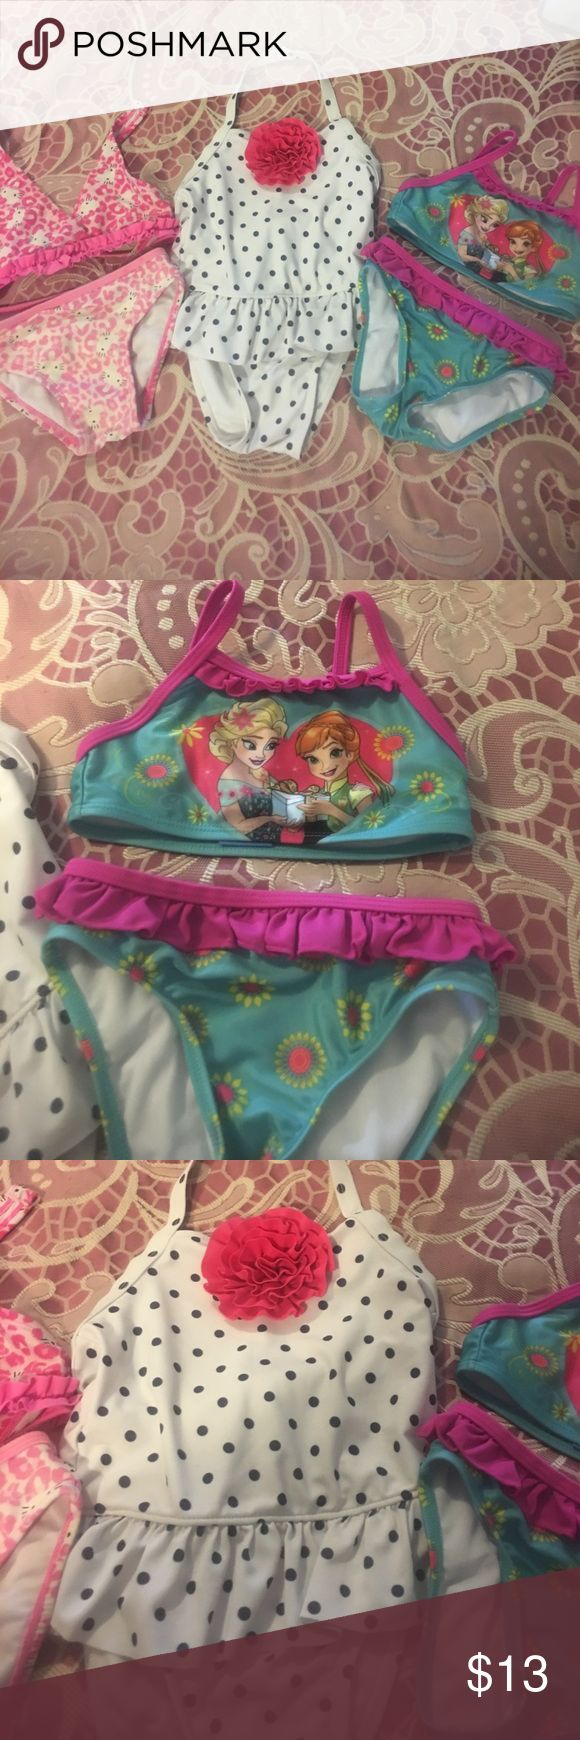 Girls 3T swimsuit lot. Frozen, Hello Kitty 2 bikinis and a one piece all 3T. The Frozen suit and the one piece are in perfect shape the Hello Kitty bottoms are really faded the top is fine. Swim